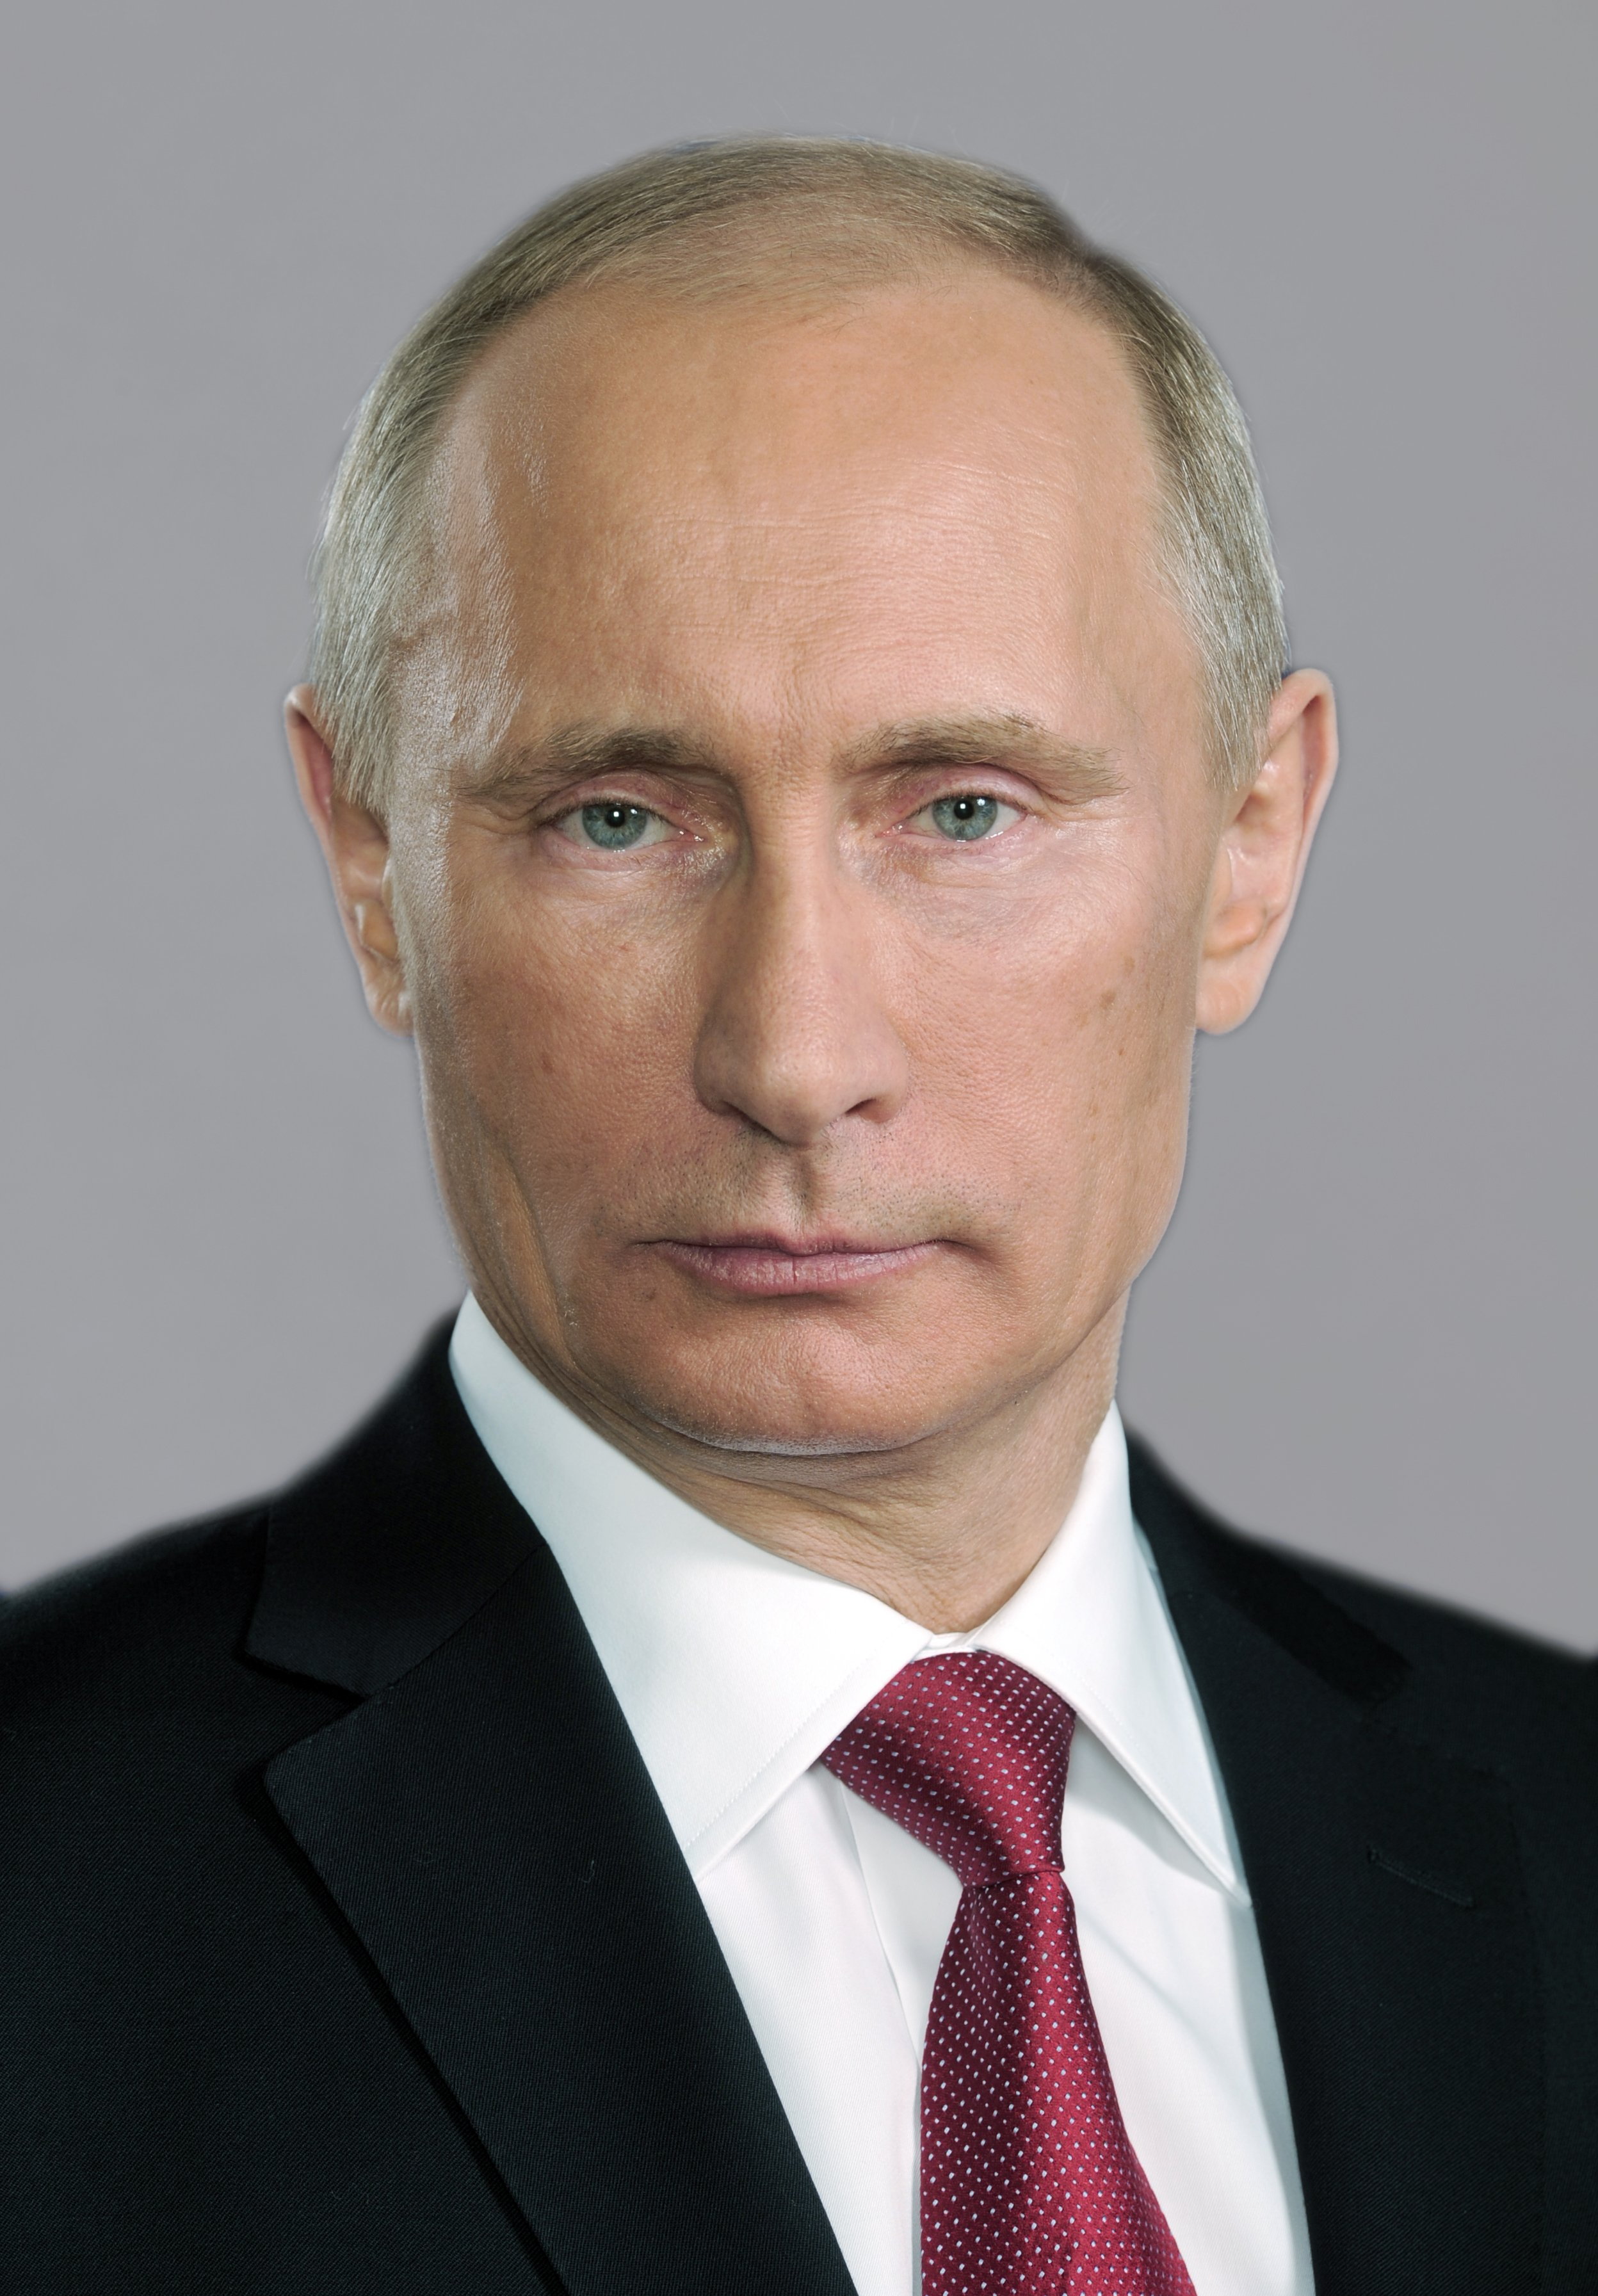 Click to enlarge image 01putin_v_v.jpg